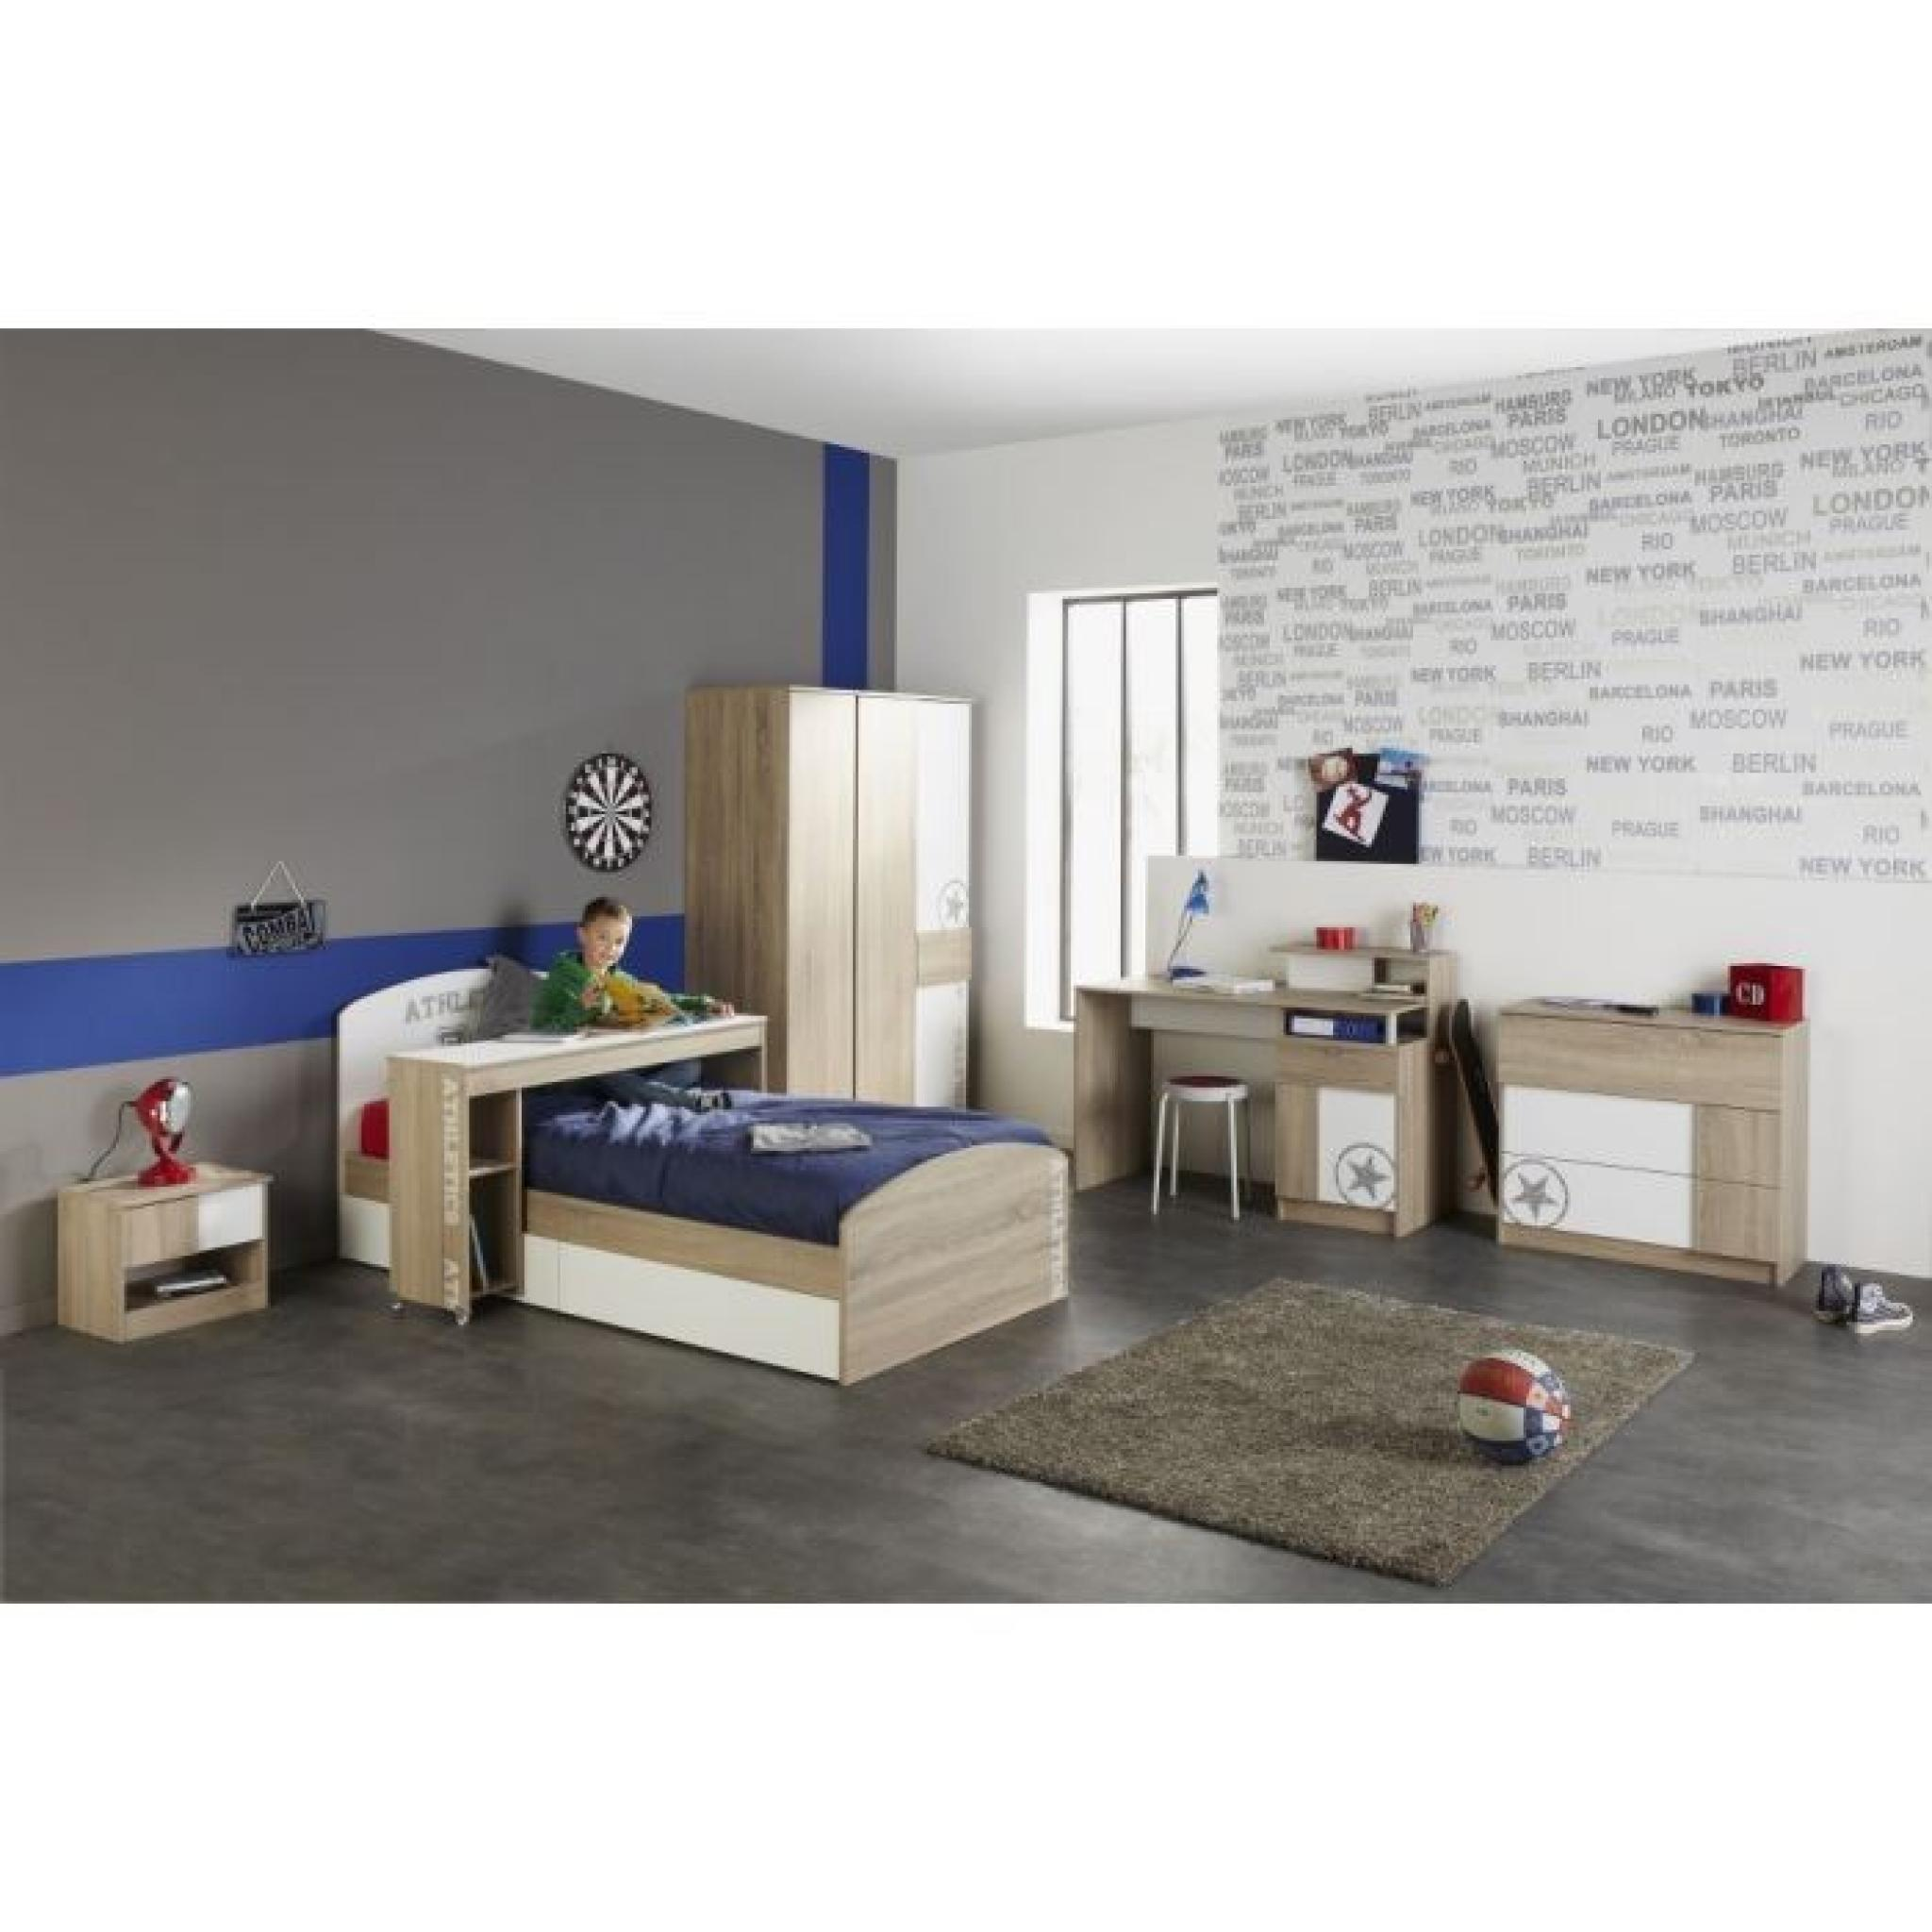 college chambre compl te enfant ch ne blanc achat vente chambre complete pas cher couleur. Black Bedroom Furniture Sets. Home Design Ideas